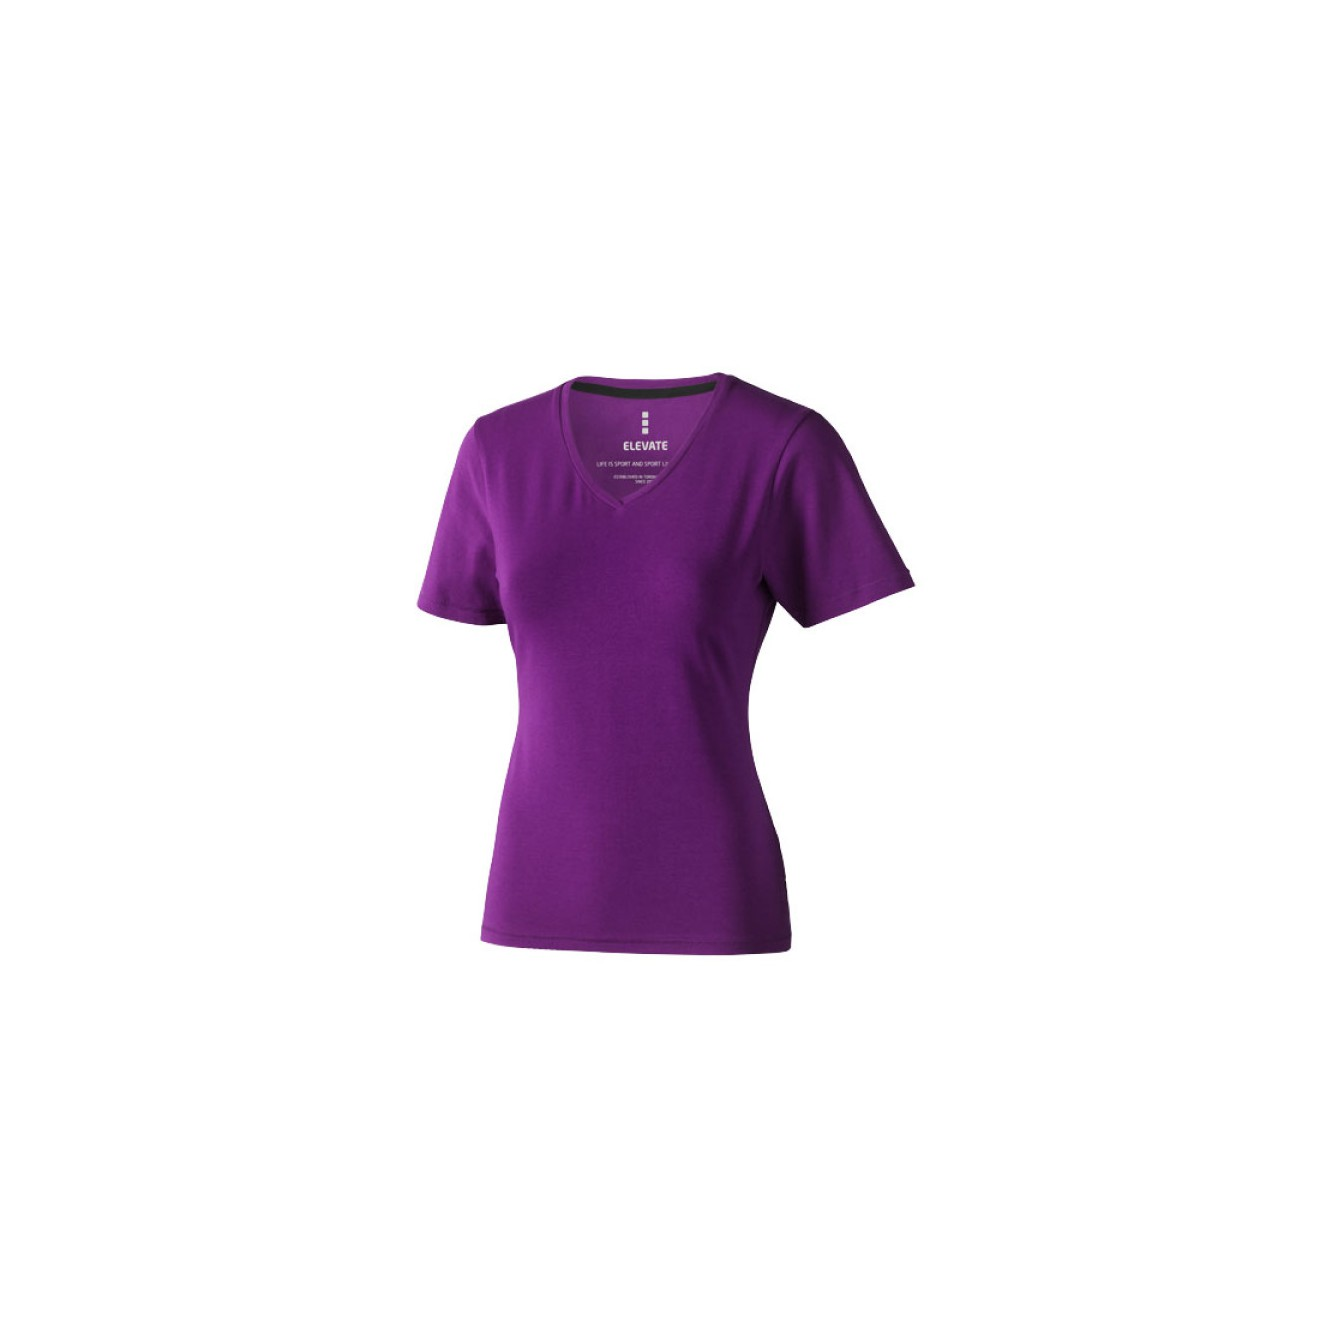 Dames Kawartha V-hals t-shirt